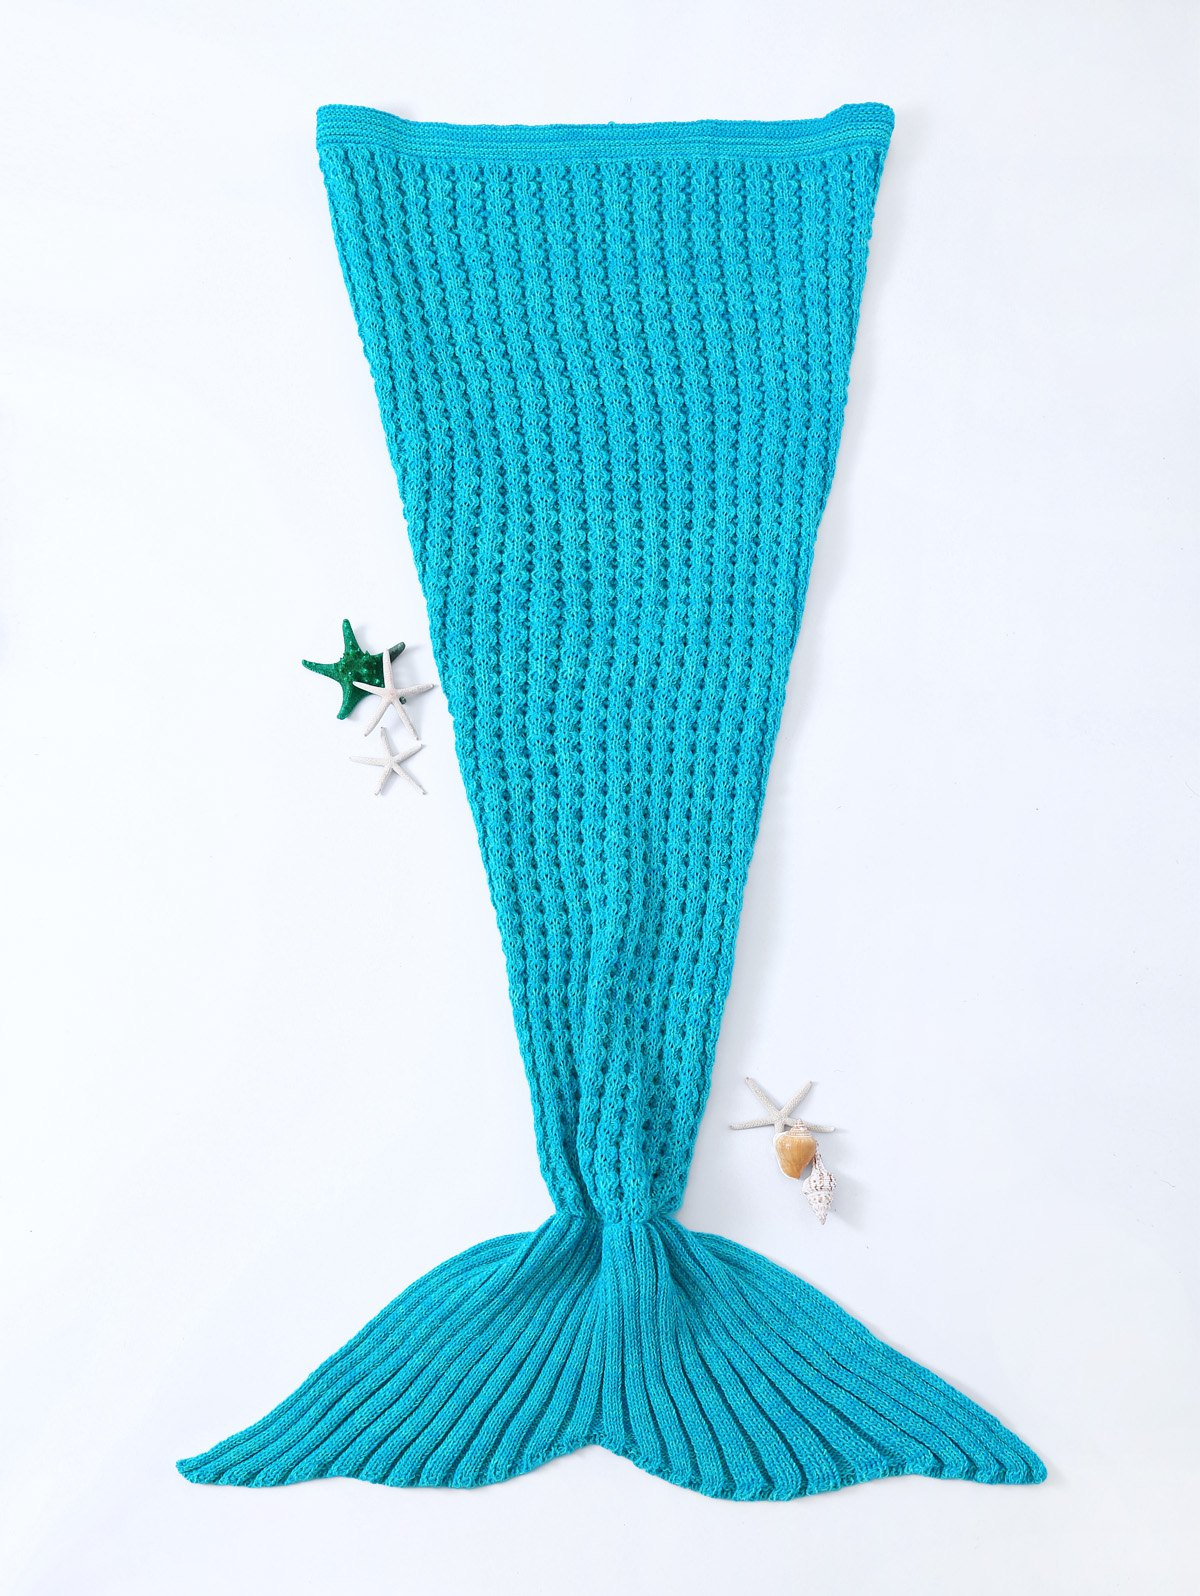 Fashionable Blue Crochet Knitted Mermaid Tail Design Blanket For KidsHome<br><br><br>Color: BLUE